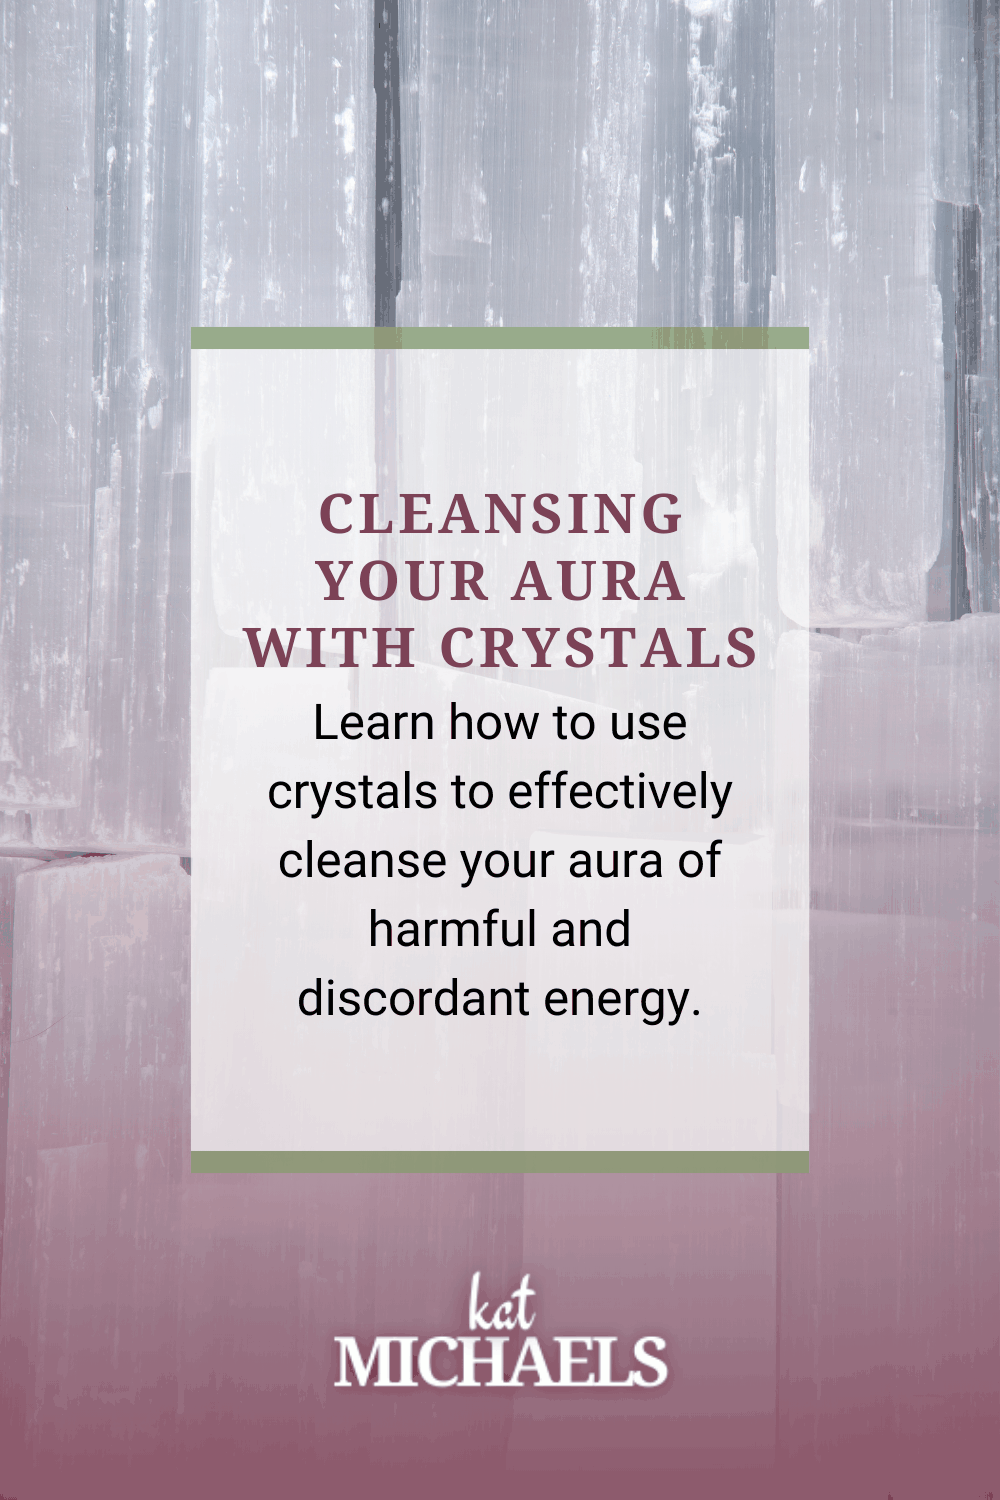 Cleansing your aura with crystals